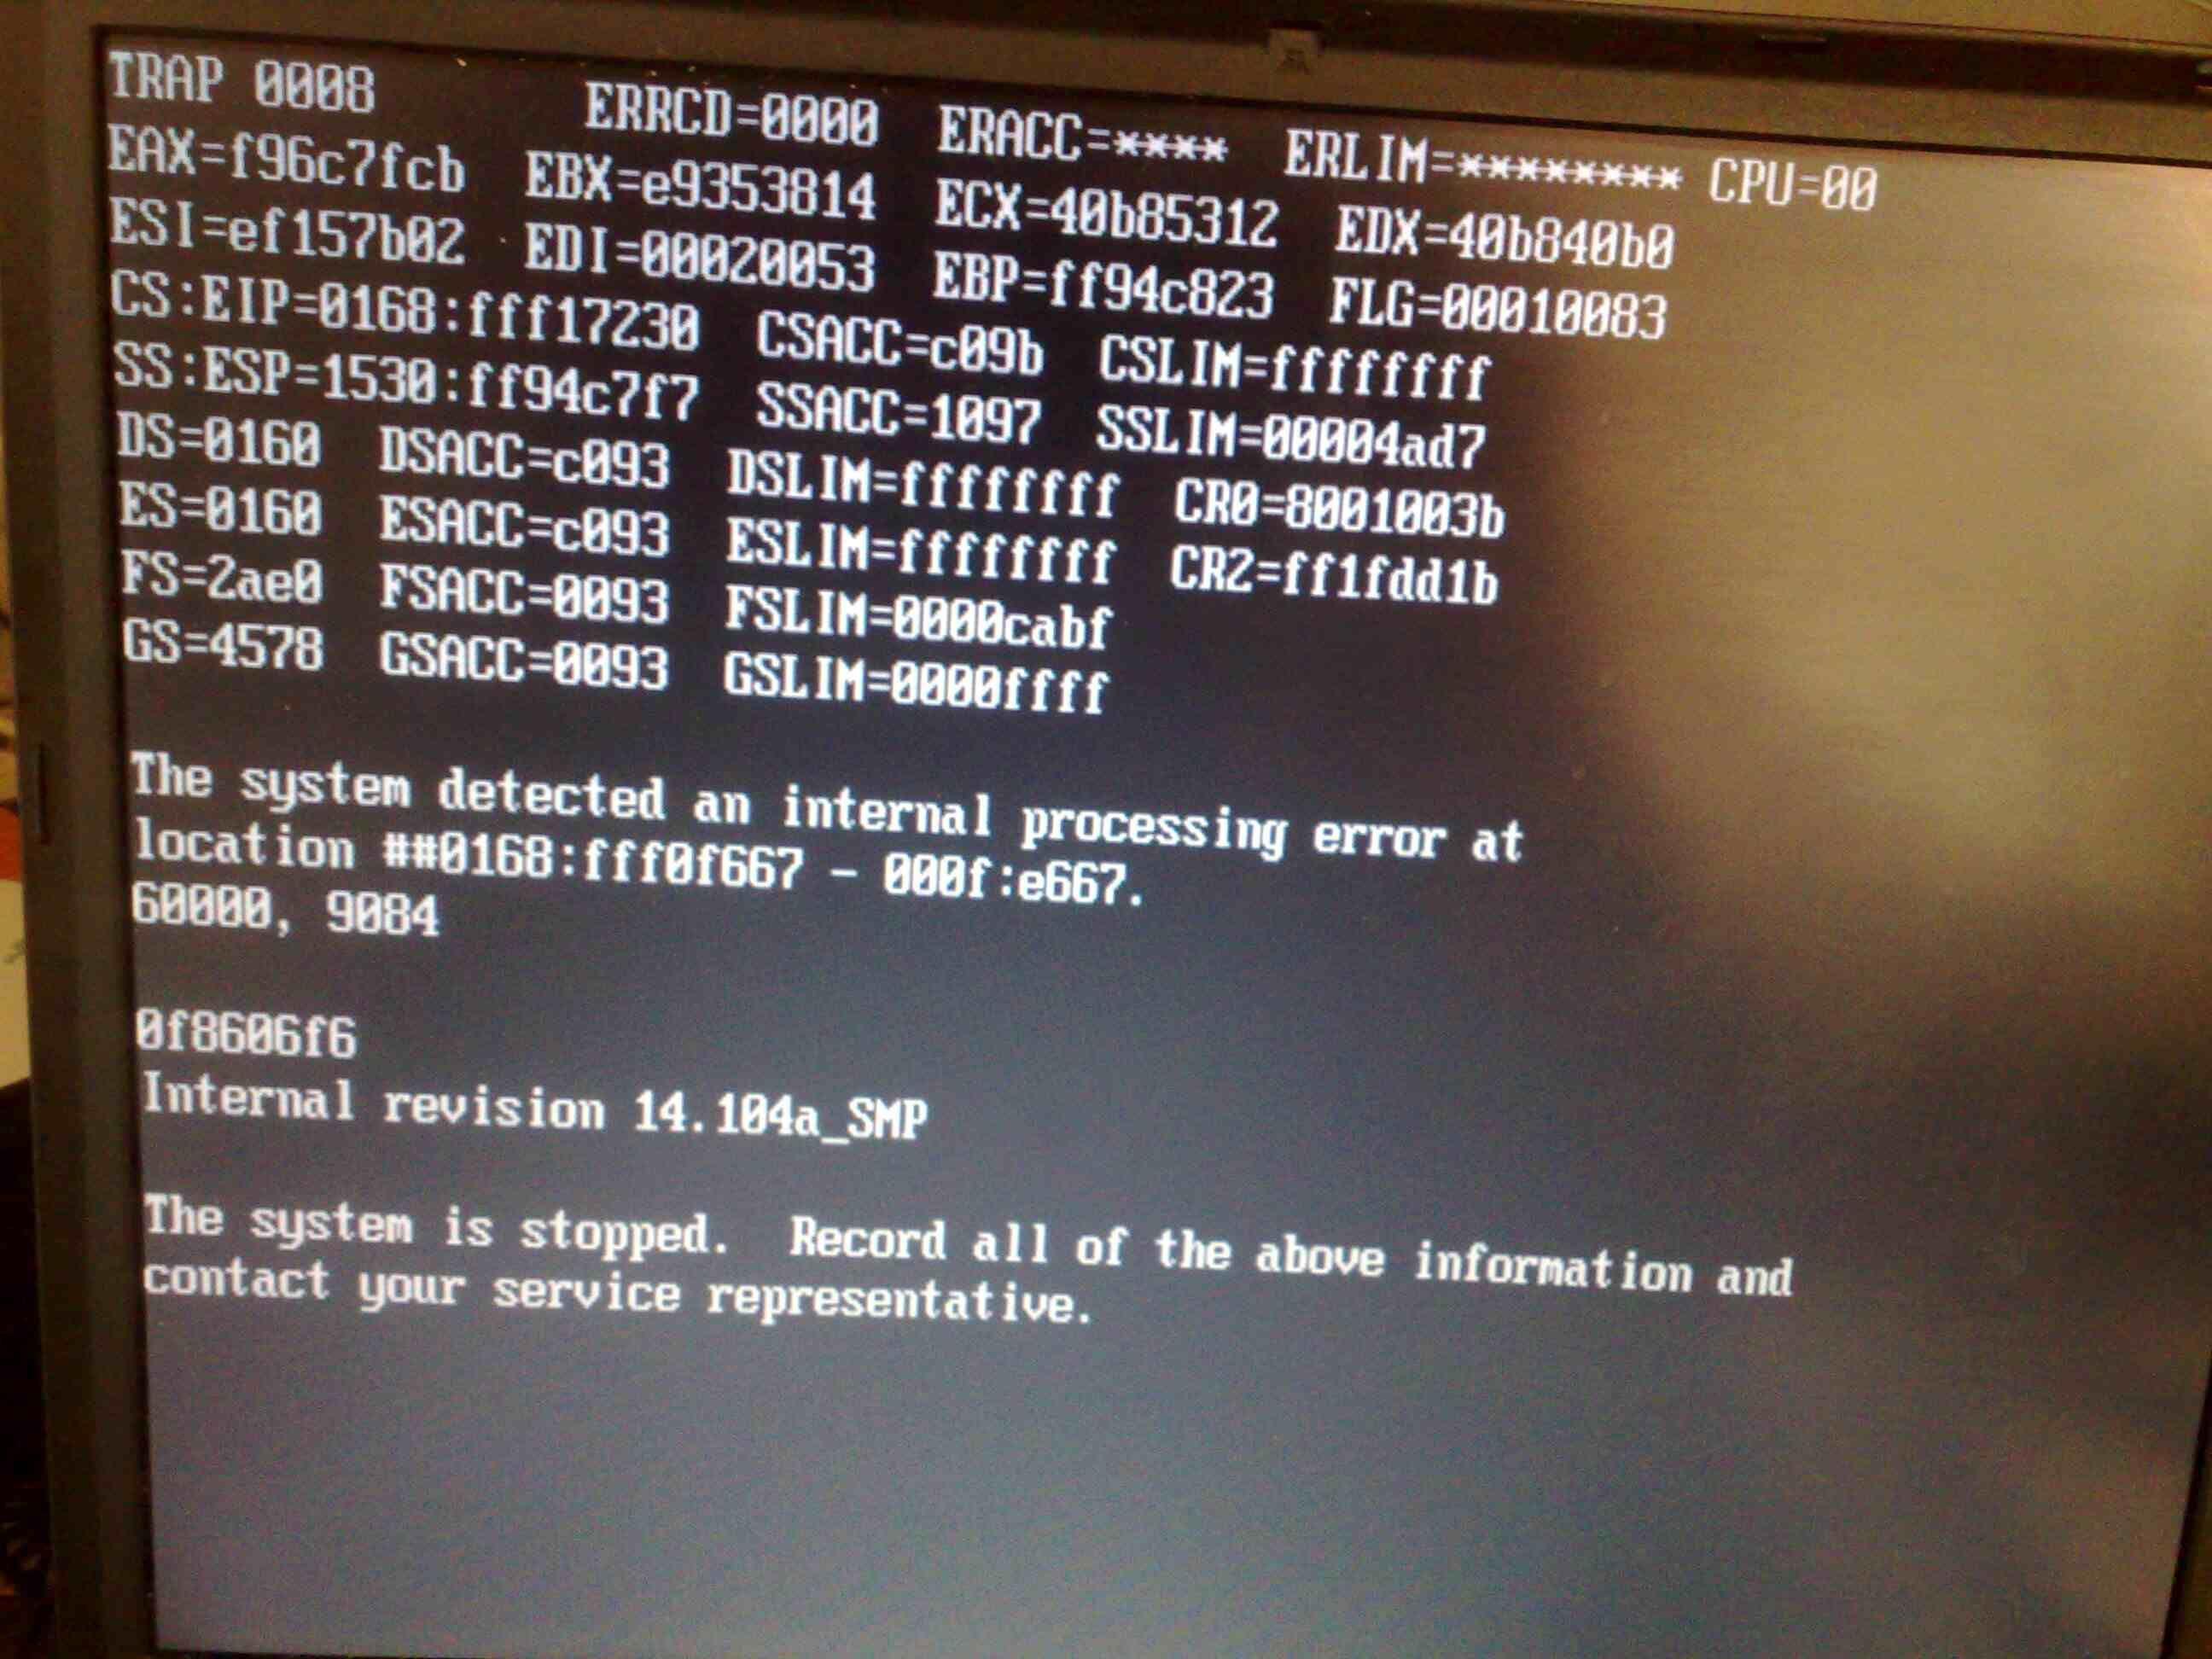 DOWNLOAD DRIVERS: ACPI 0008